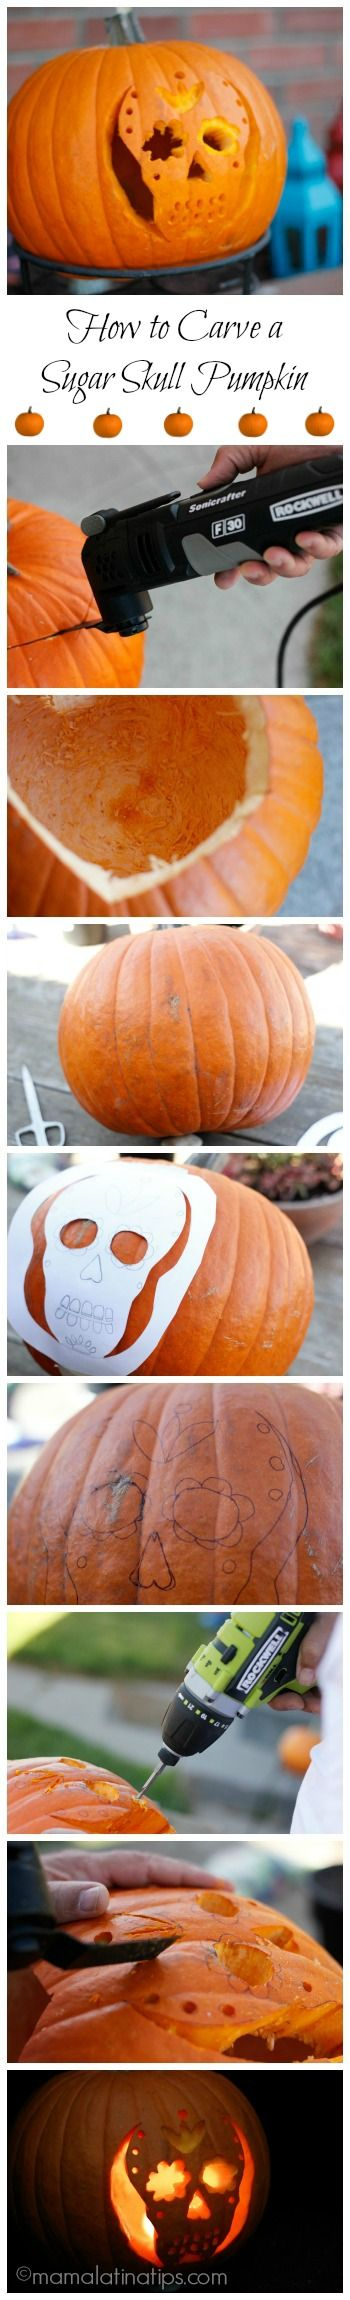 Best 20+ Skull pumpkin ideas on Pinterest | Sugar skull pumpkin ...